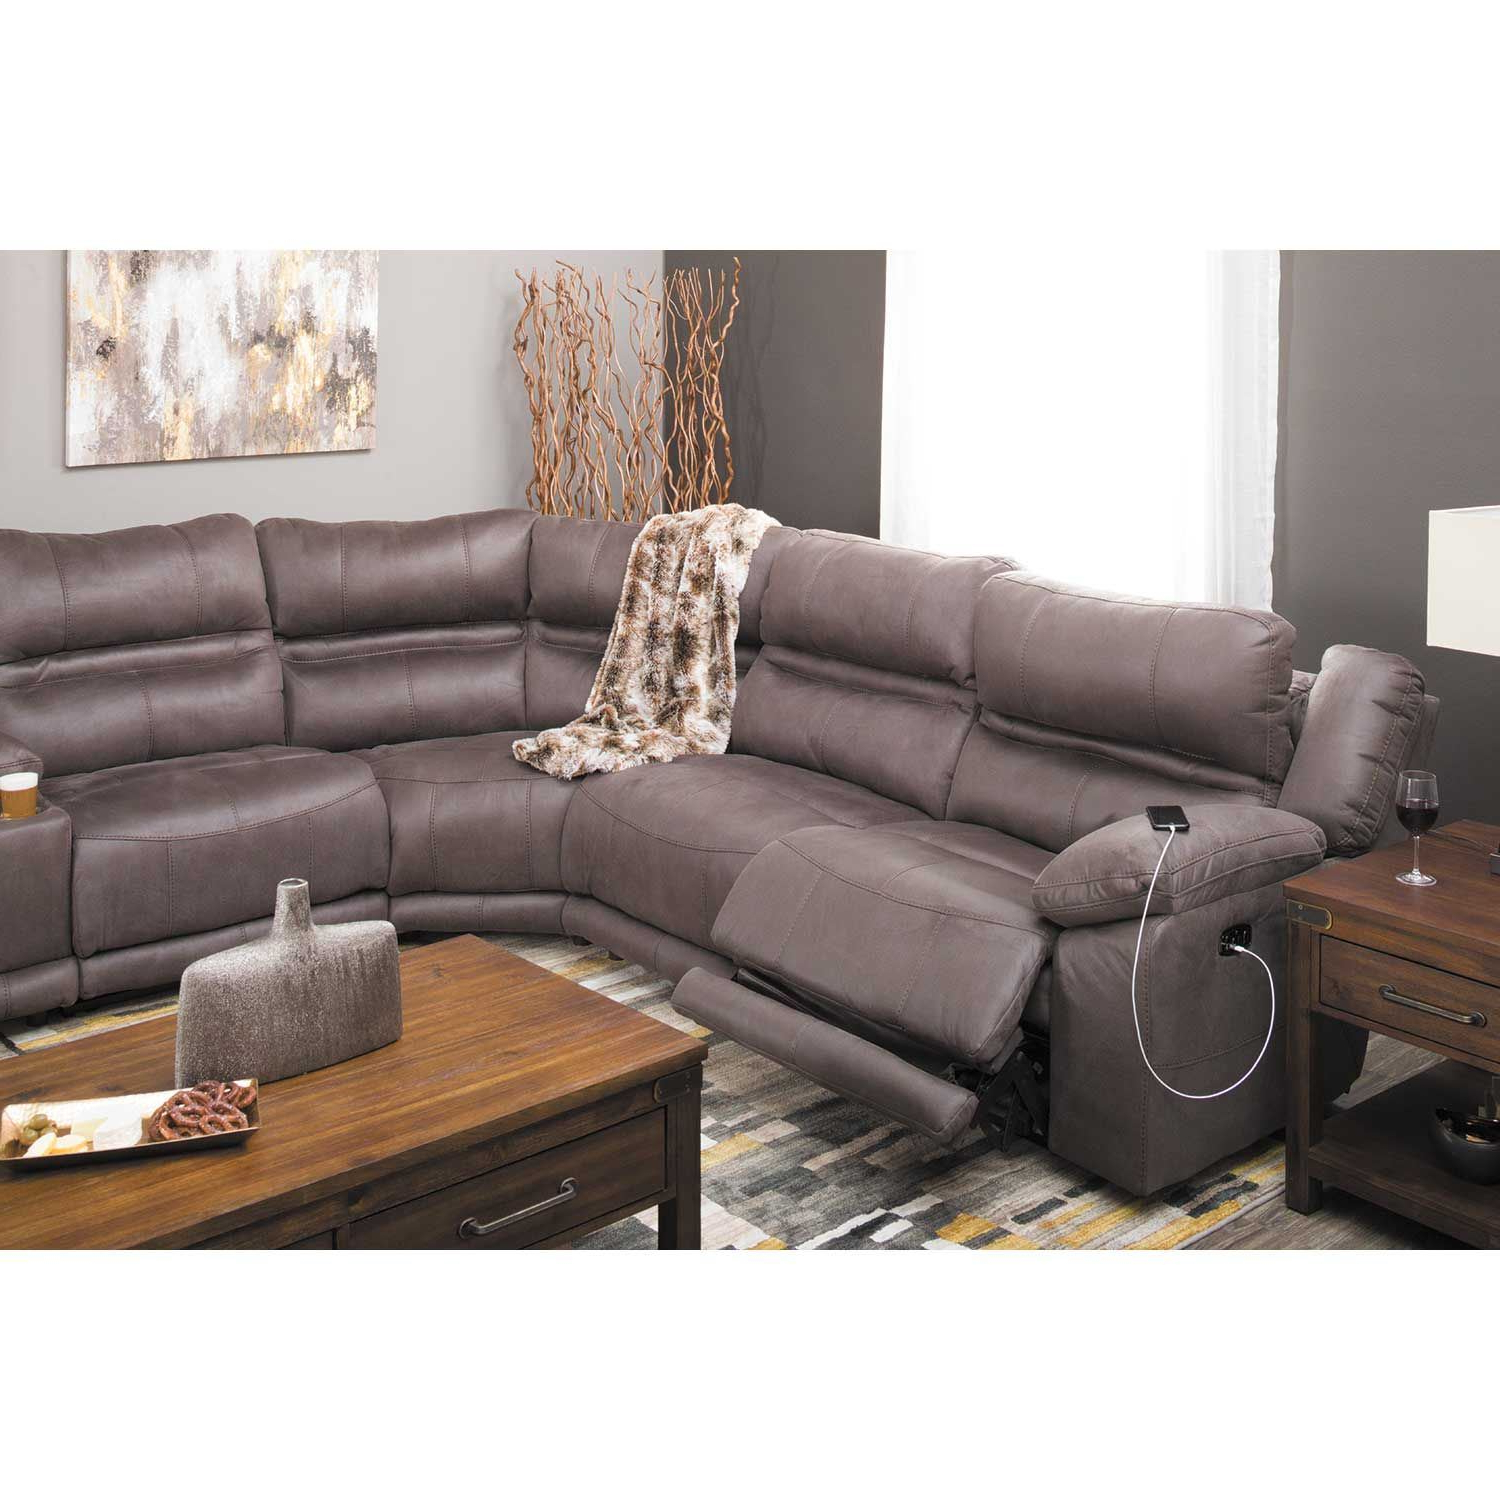 Most Current Braxton 6 Piece Power Reclining Sectional With Adjustable Headrest Intended For Jackson 6 Piece Power Reclining Sectionals (View 9 of 20)